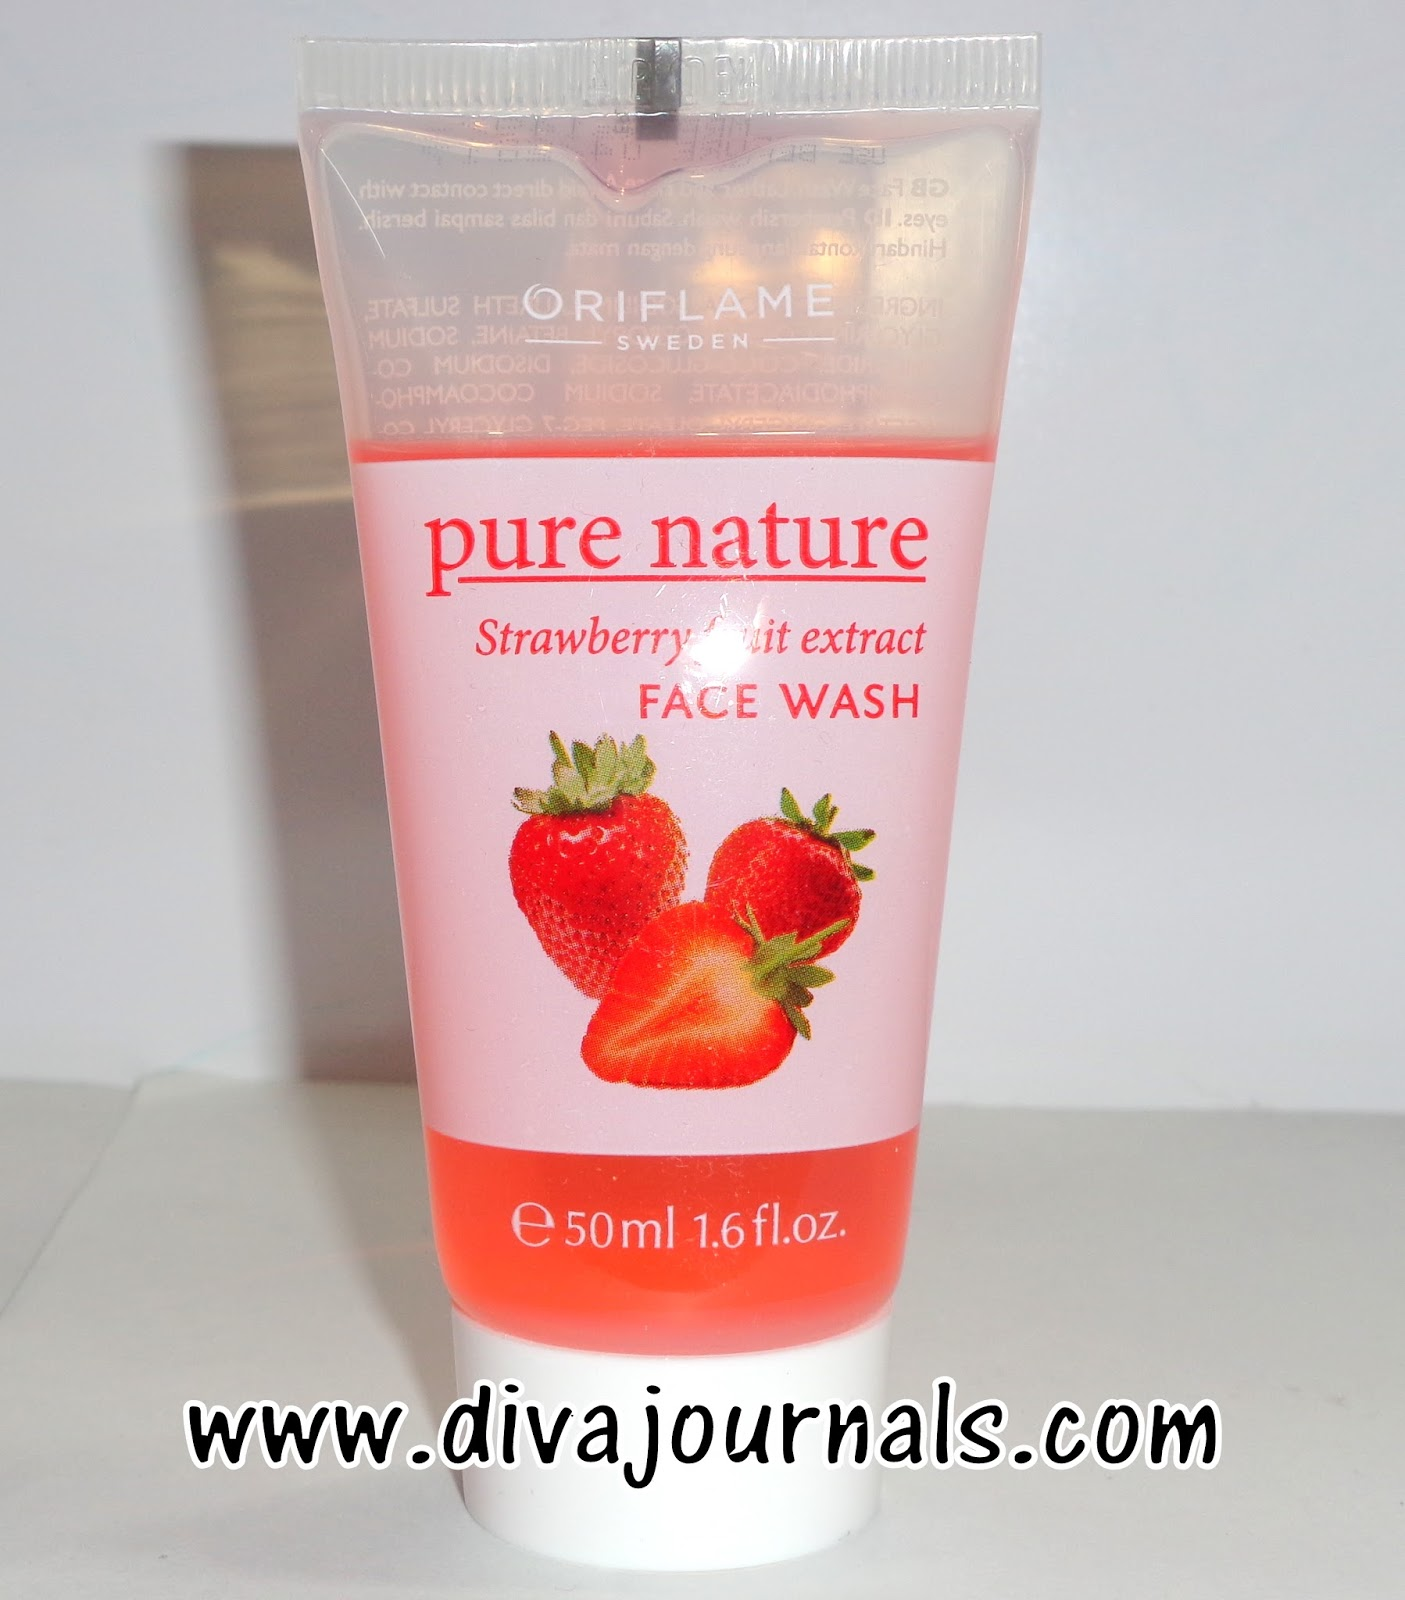 Oriflame Pure Nature Strawberry Fruit Extract Face wash